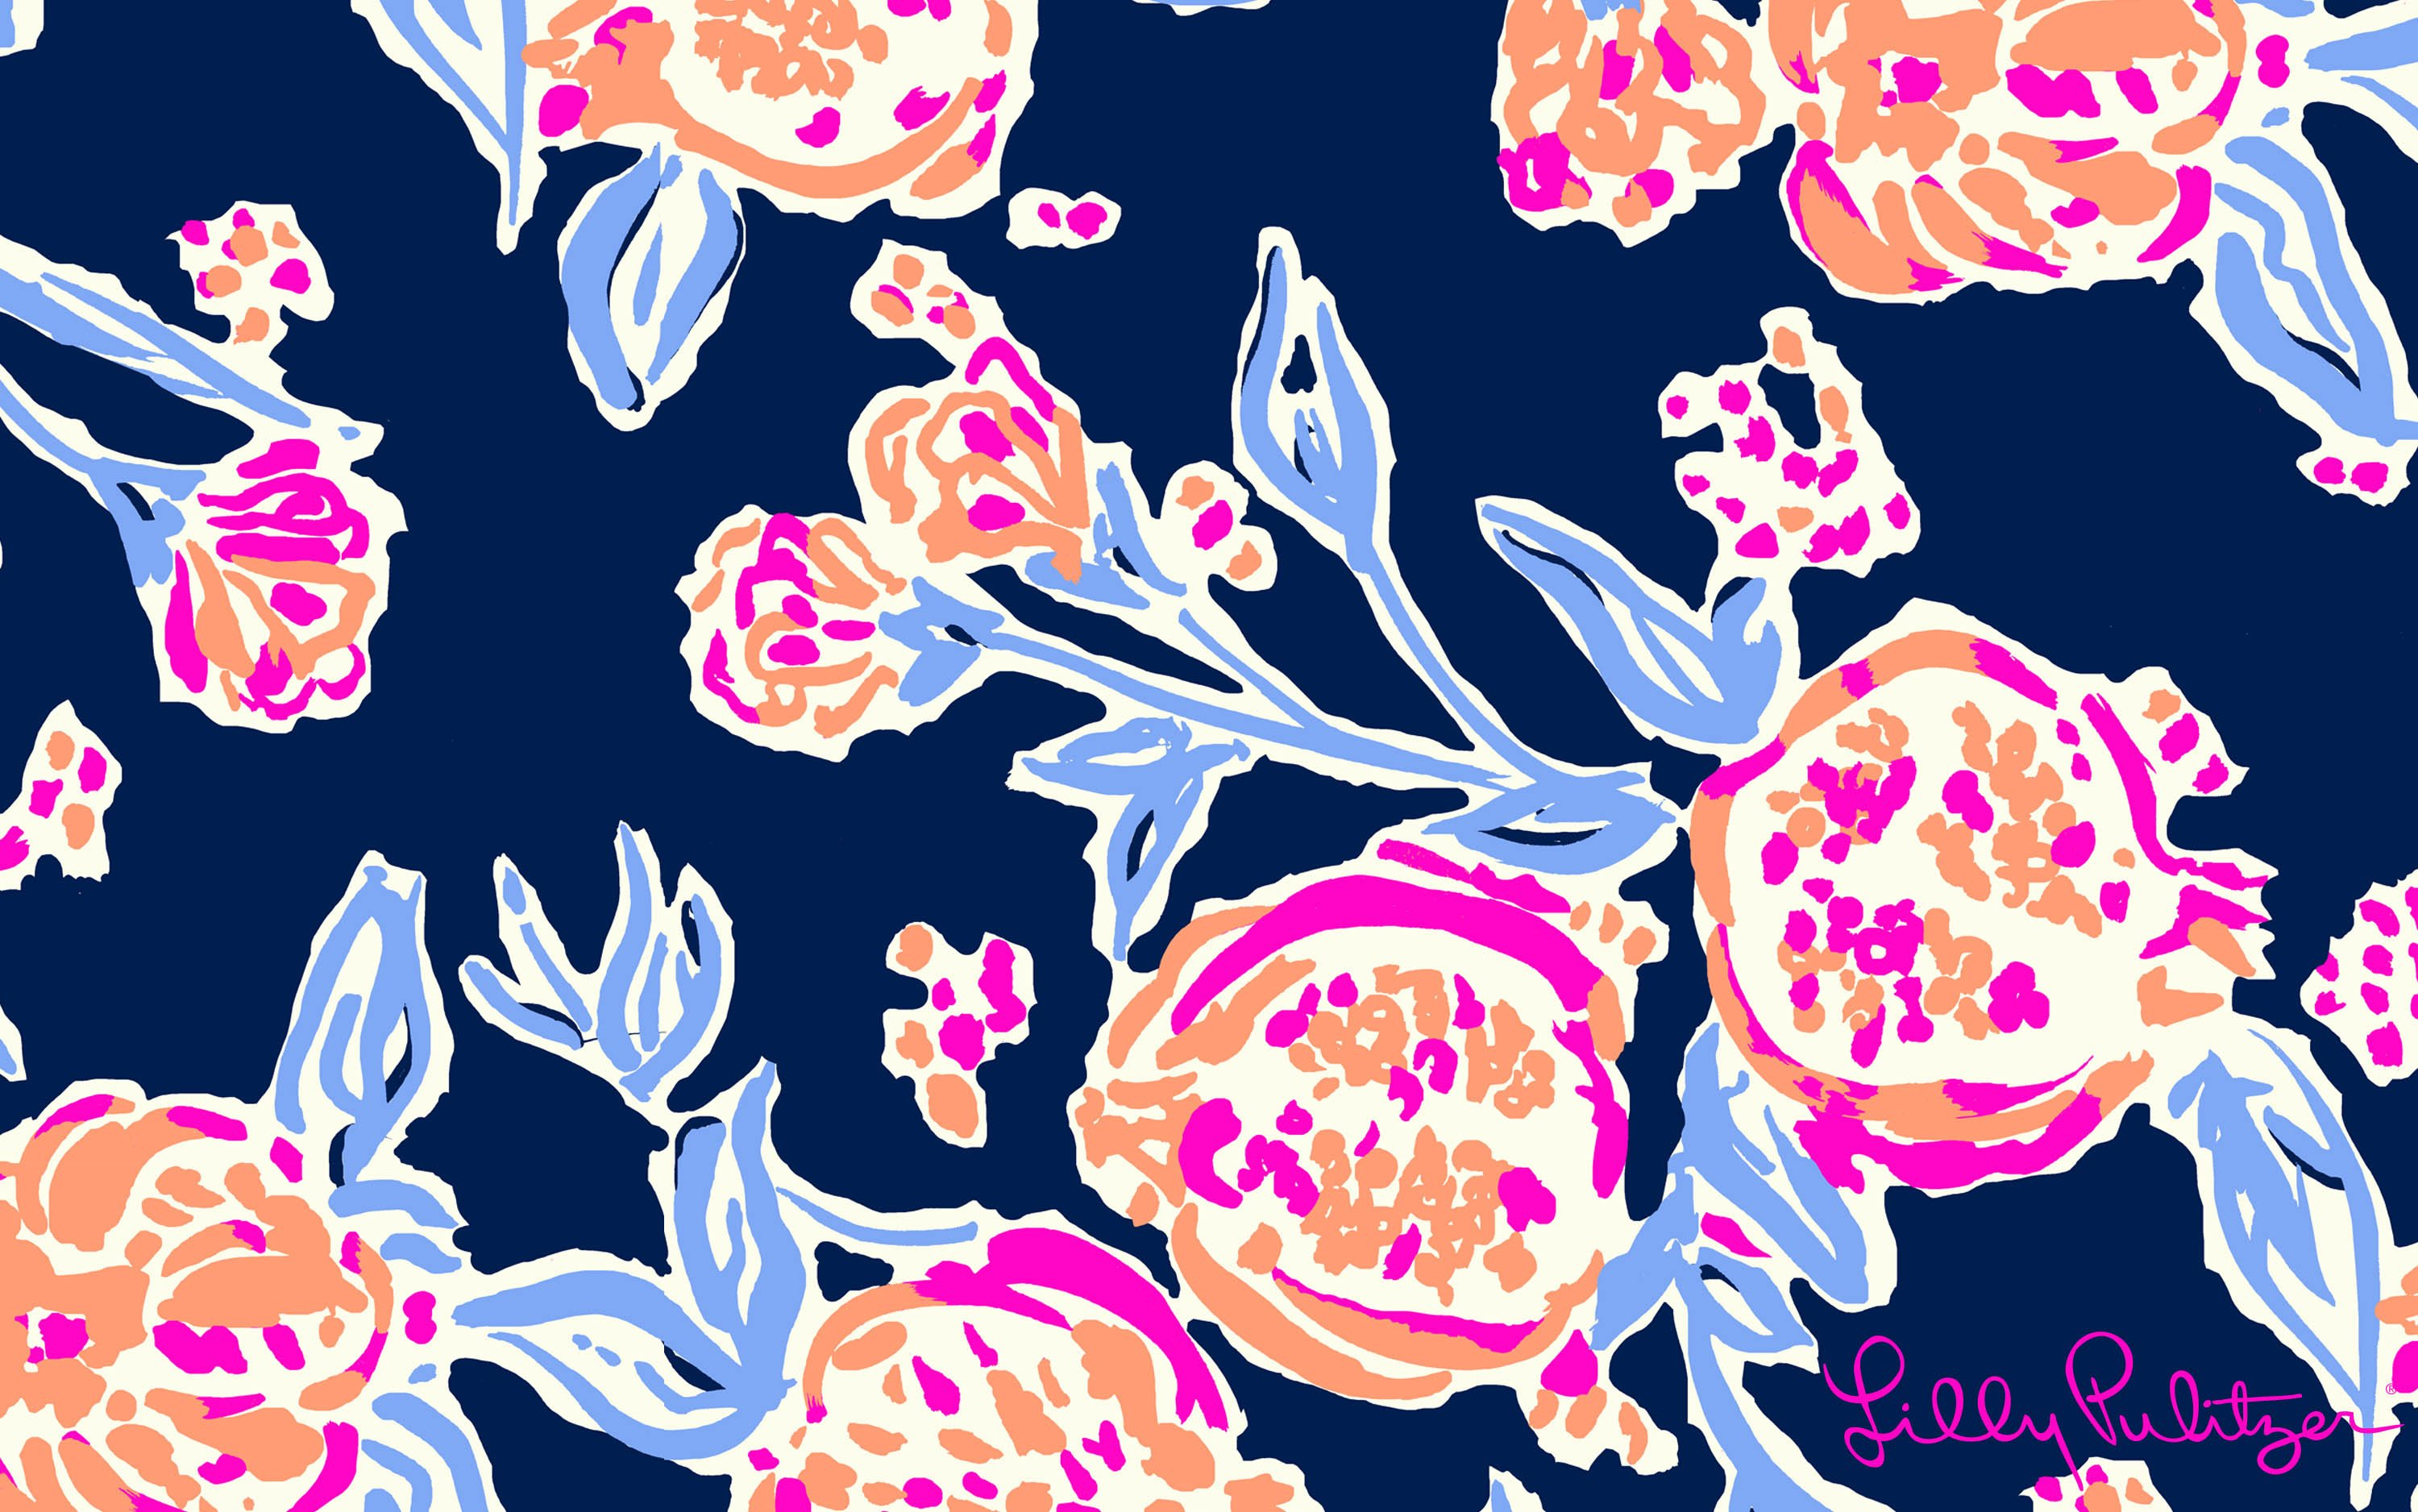 lilly pulitzer backgrounds purple pix for web